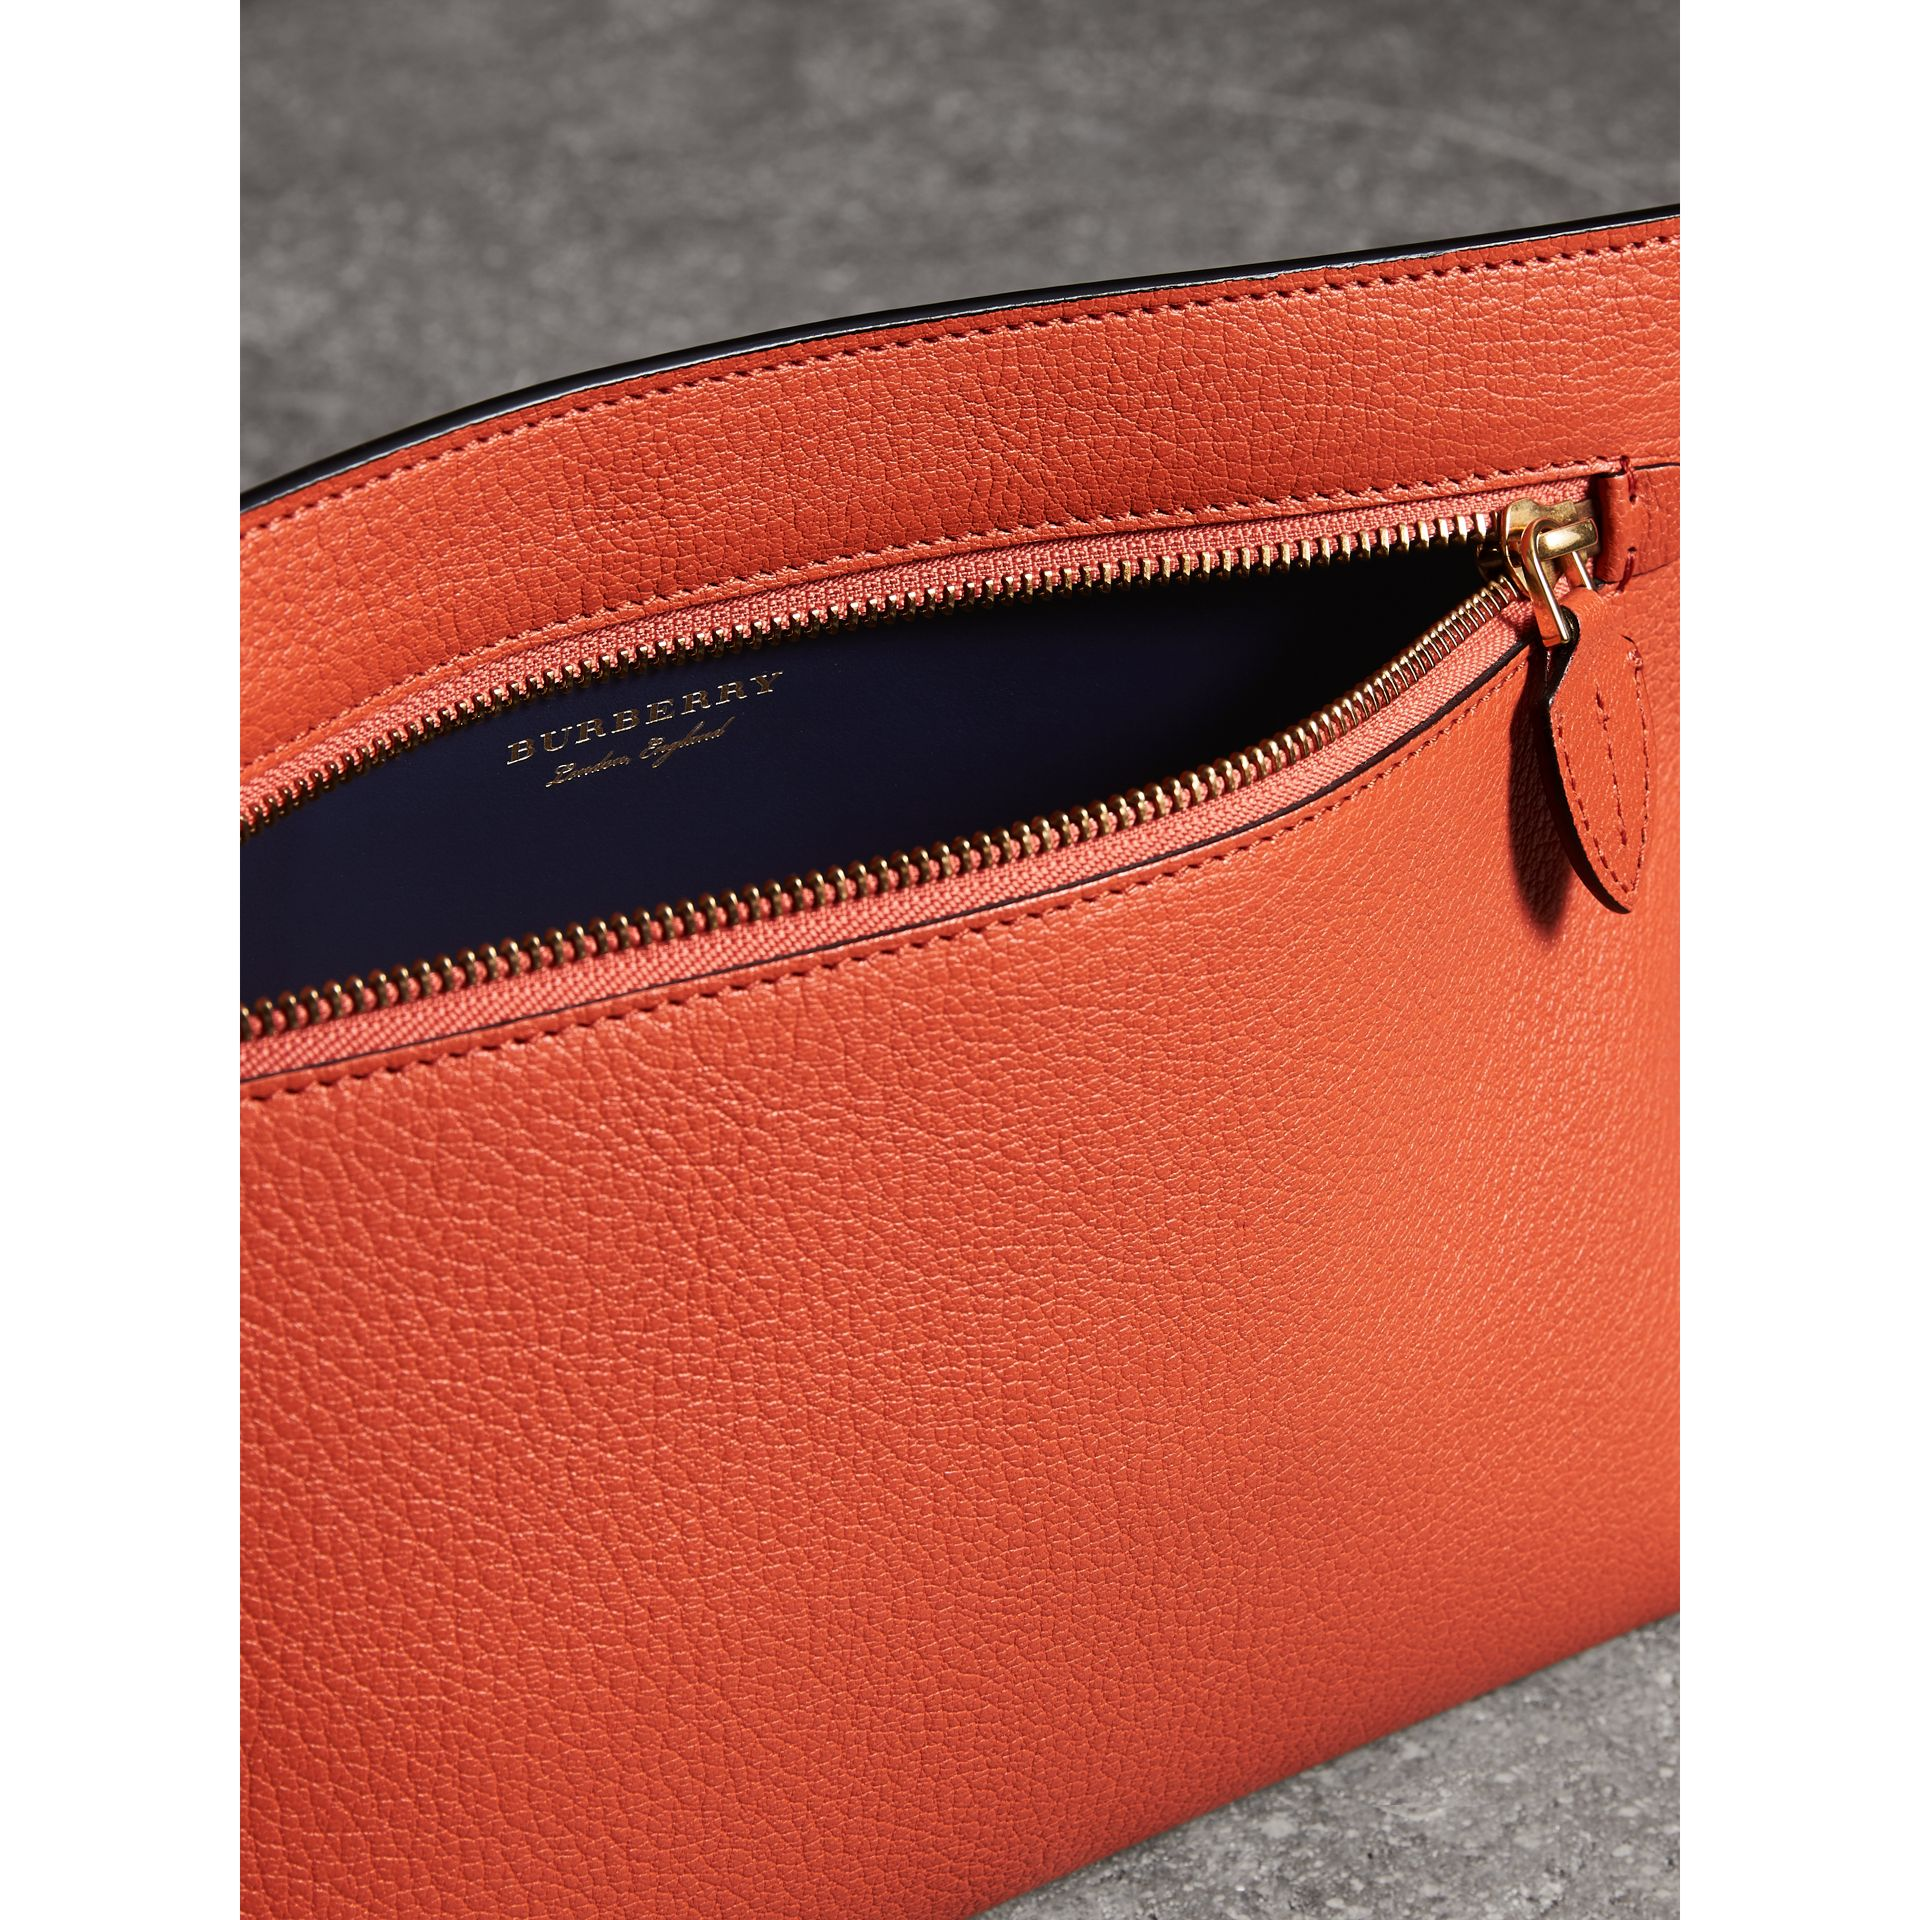 Grainy Leather Wristlet Clutch in Clementine - Women | Burberry - gallery image 6